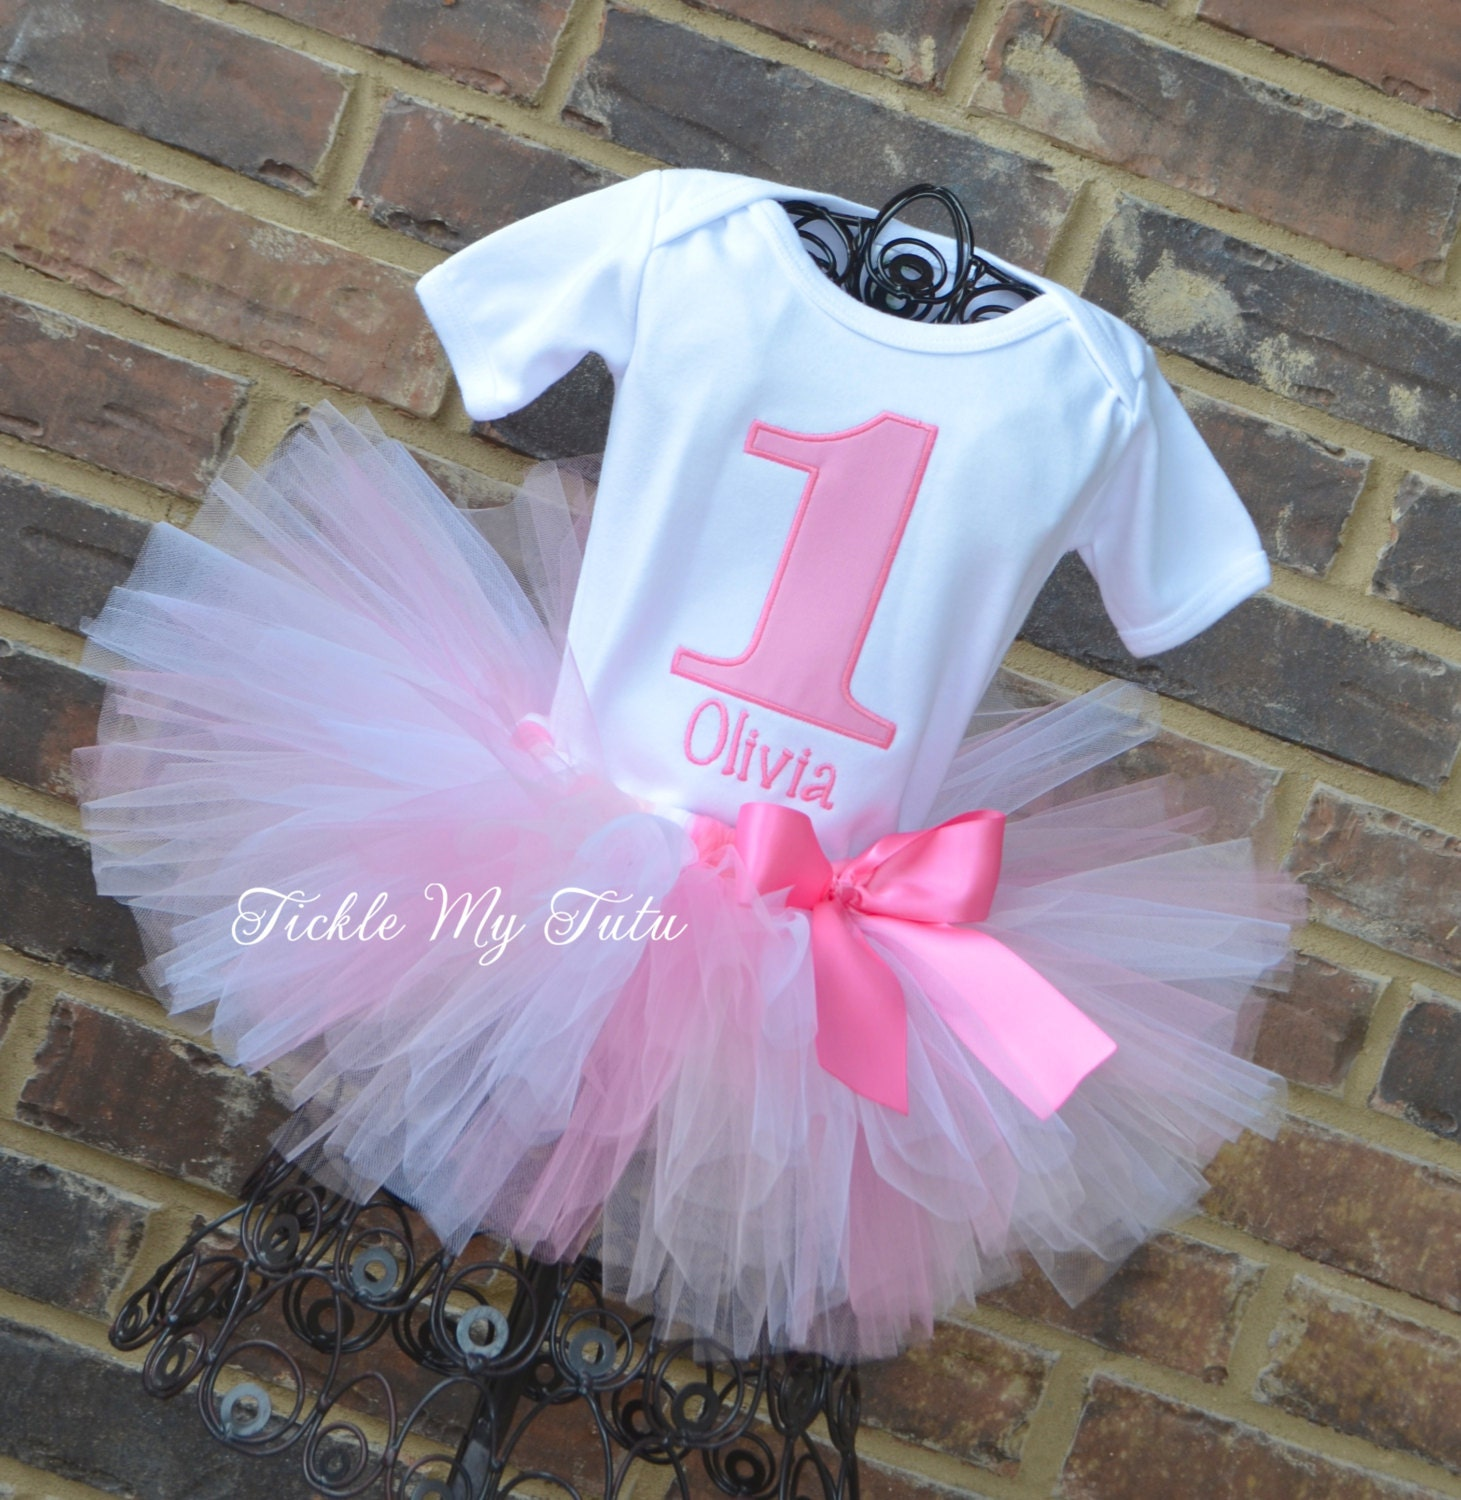 534e13c5d Pretty in Pink Olivia Birthday Tutu Outfit-Ballet | Etsy